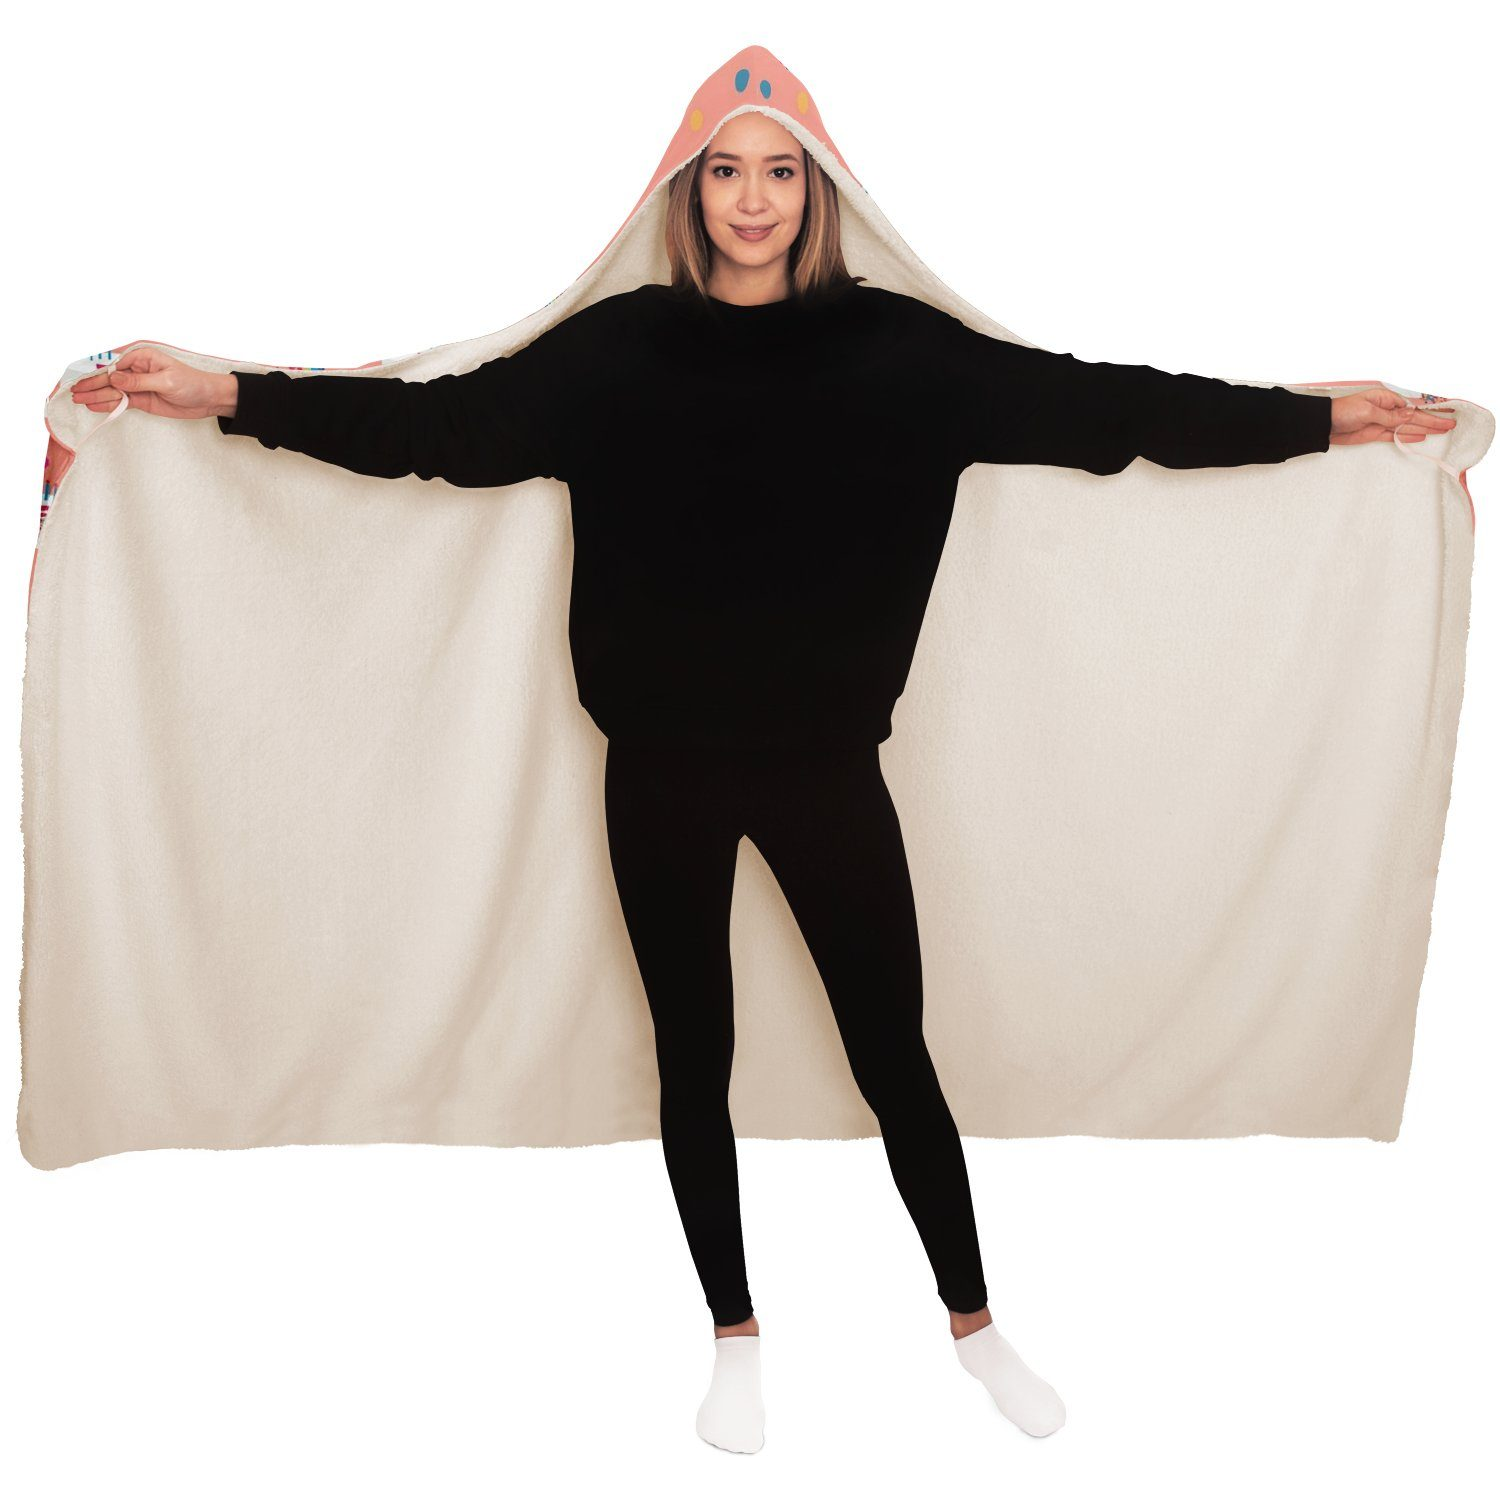 Let's Party - Hooded Blanket - Fair Dinkum Fashion